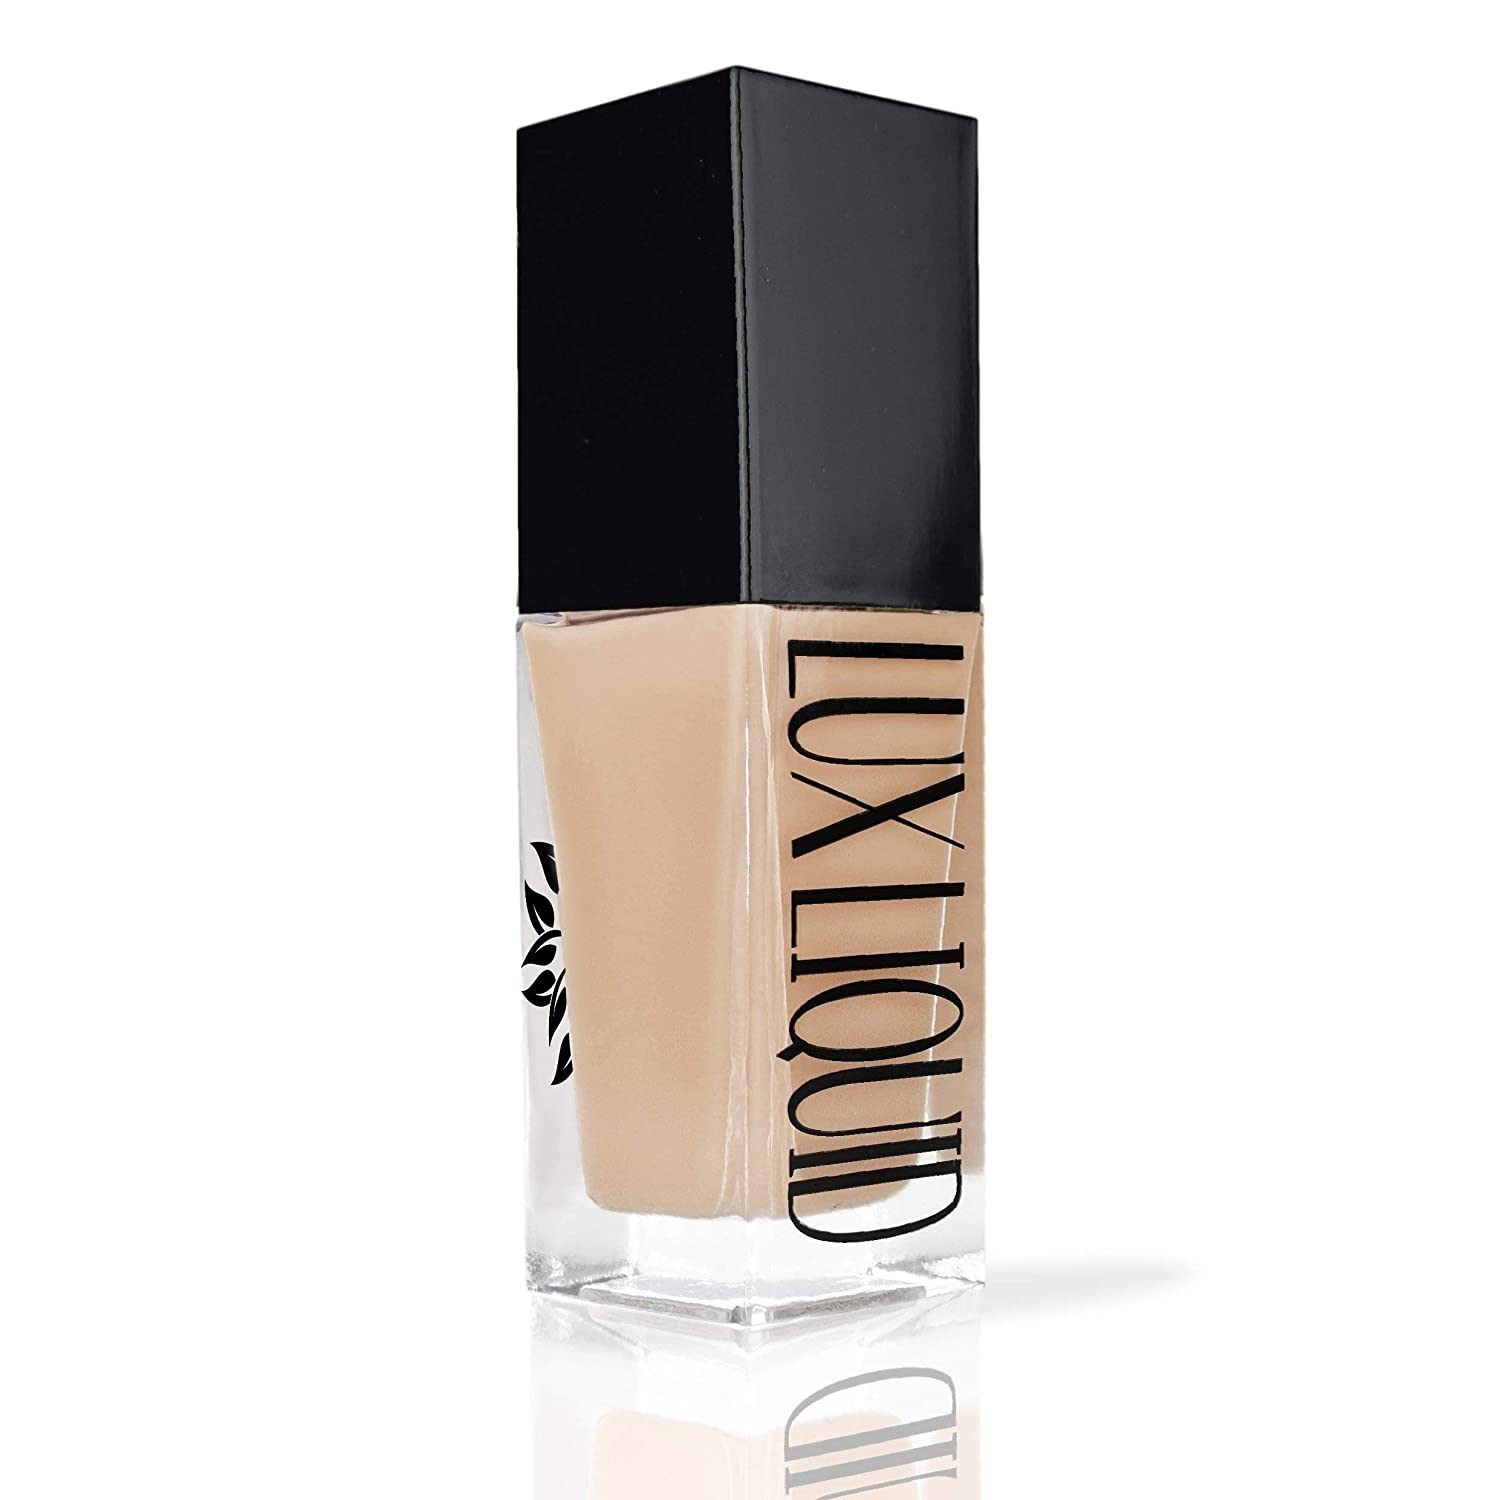 LUX Liquid Foundation by BaeBlu